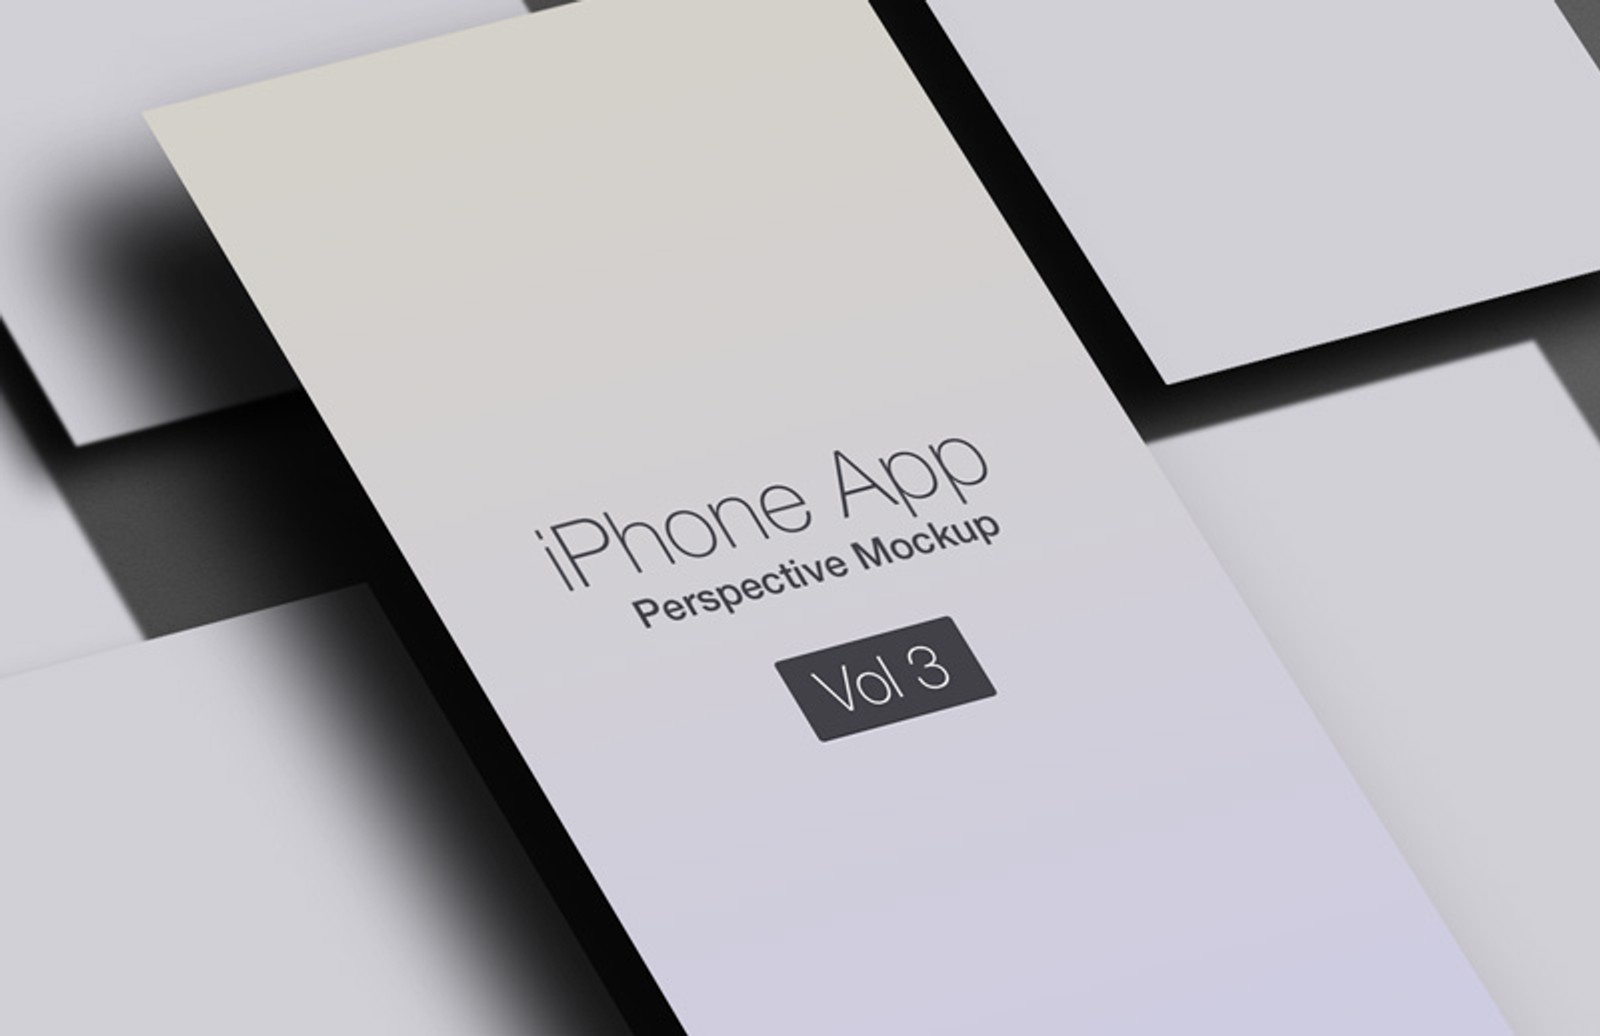 I Phone  App  Perspective  Mockup  Vol 3  Preview 1